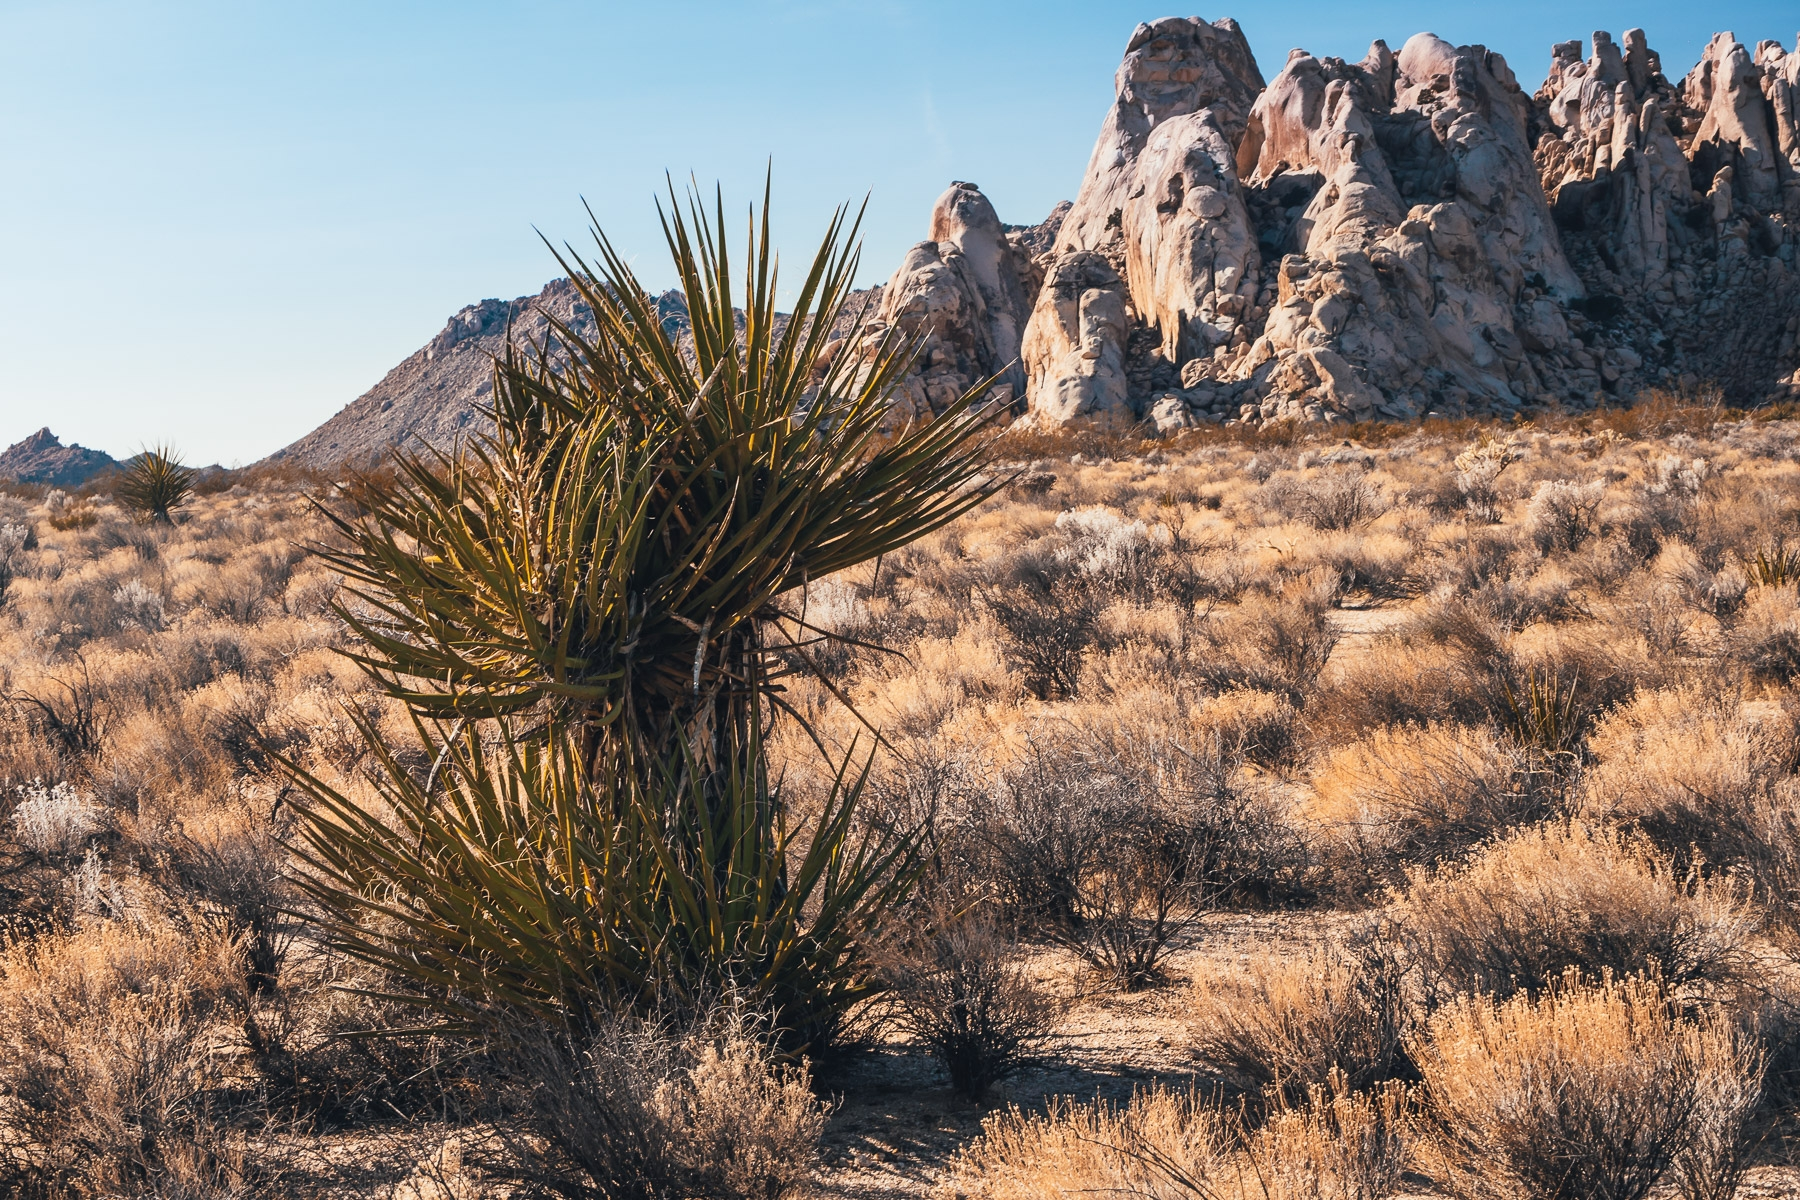 Yucca Rocks yucca tree grows ro - mattgharvey | ello